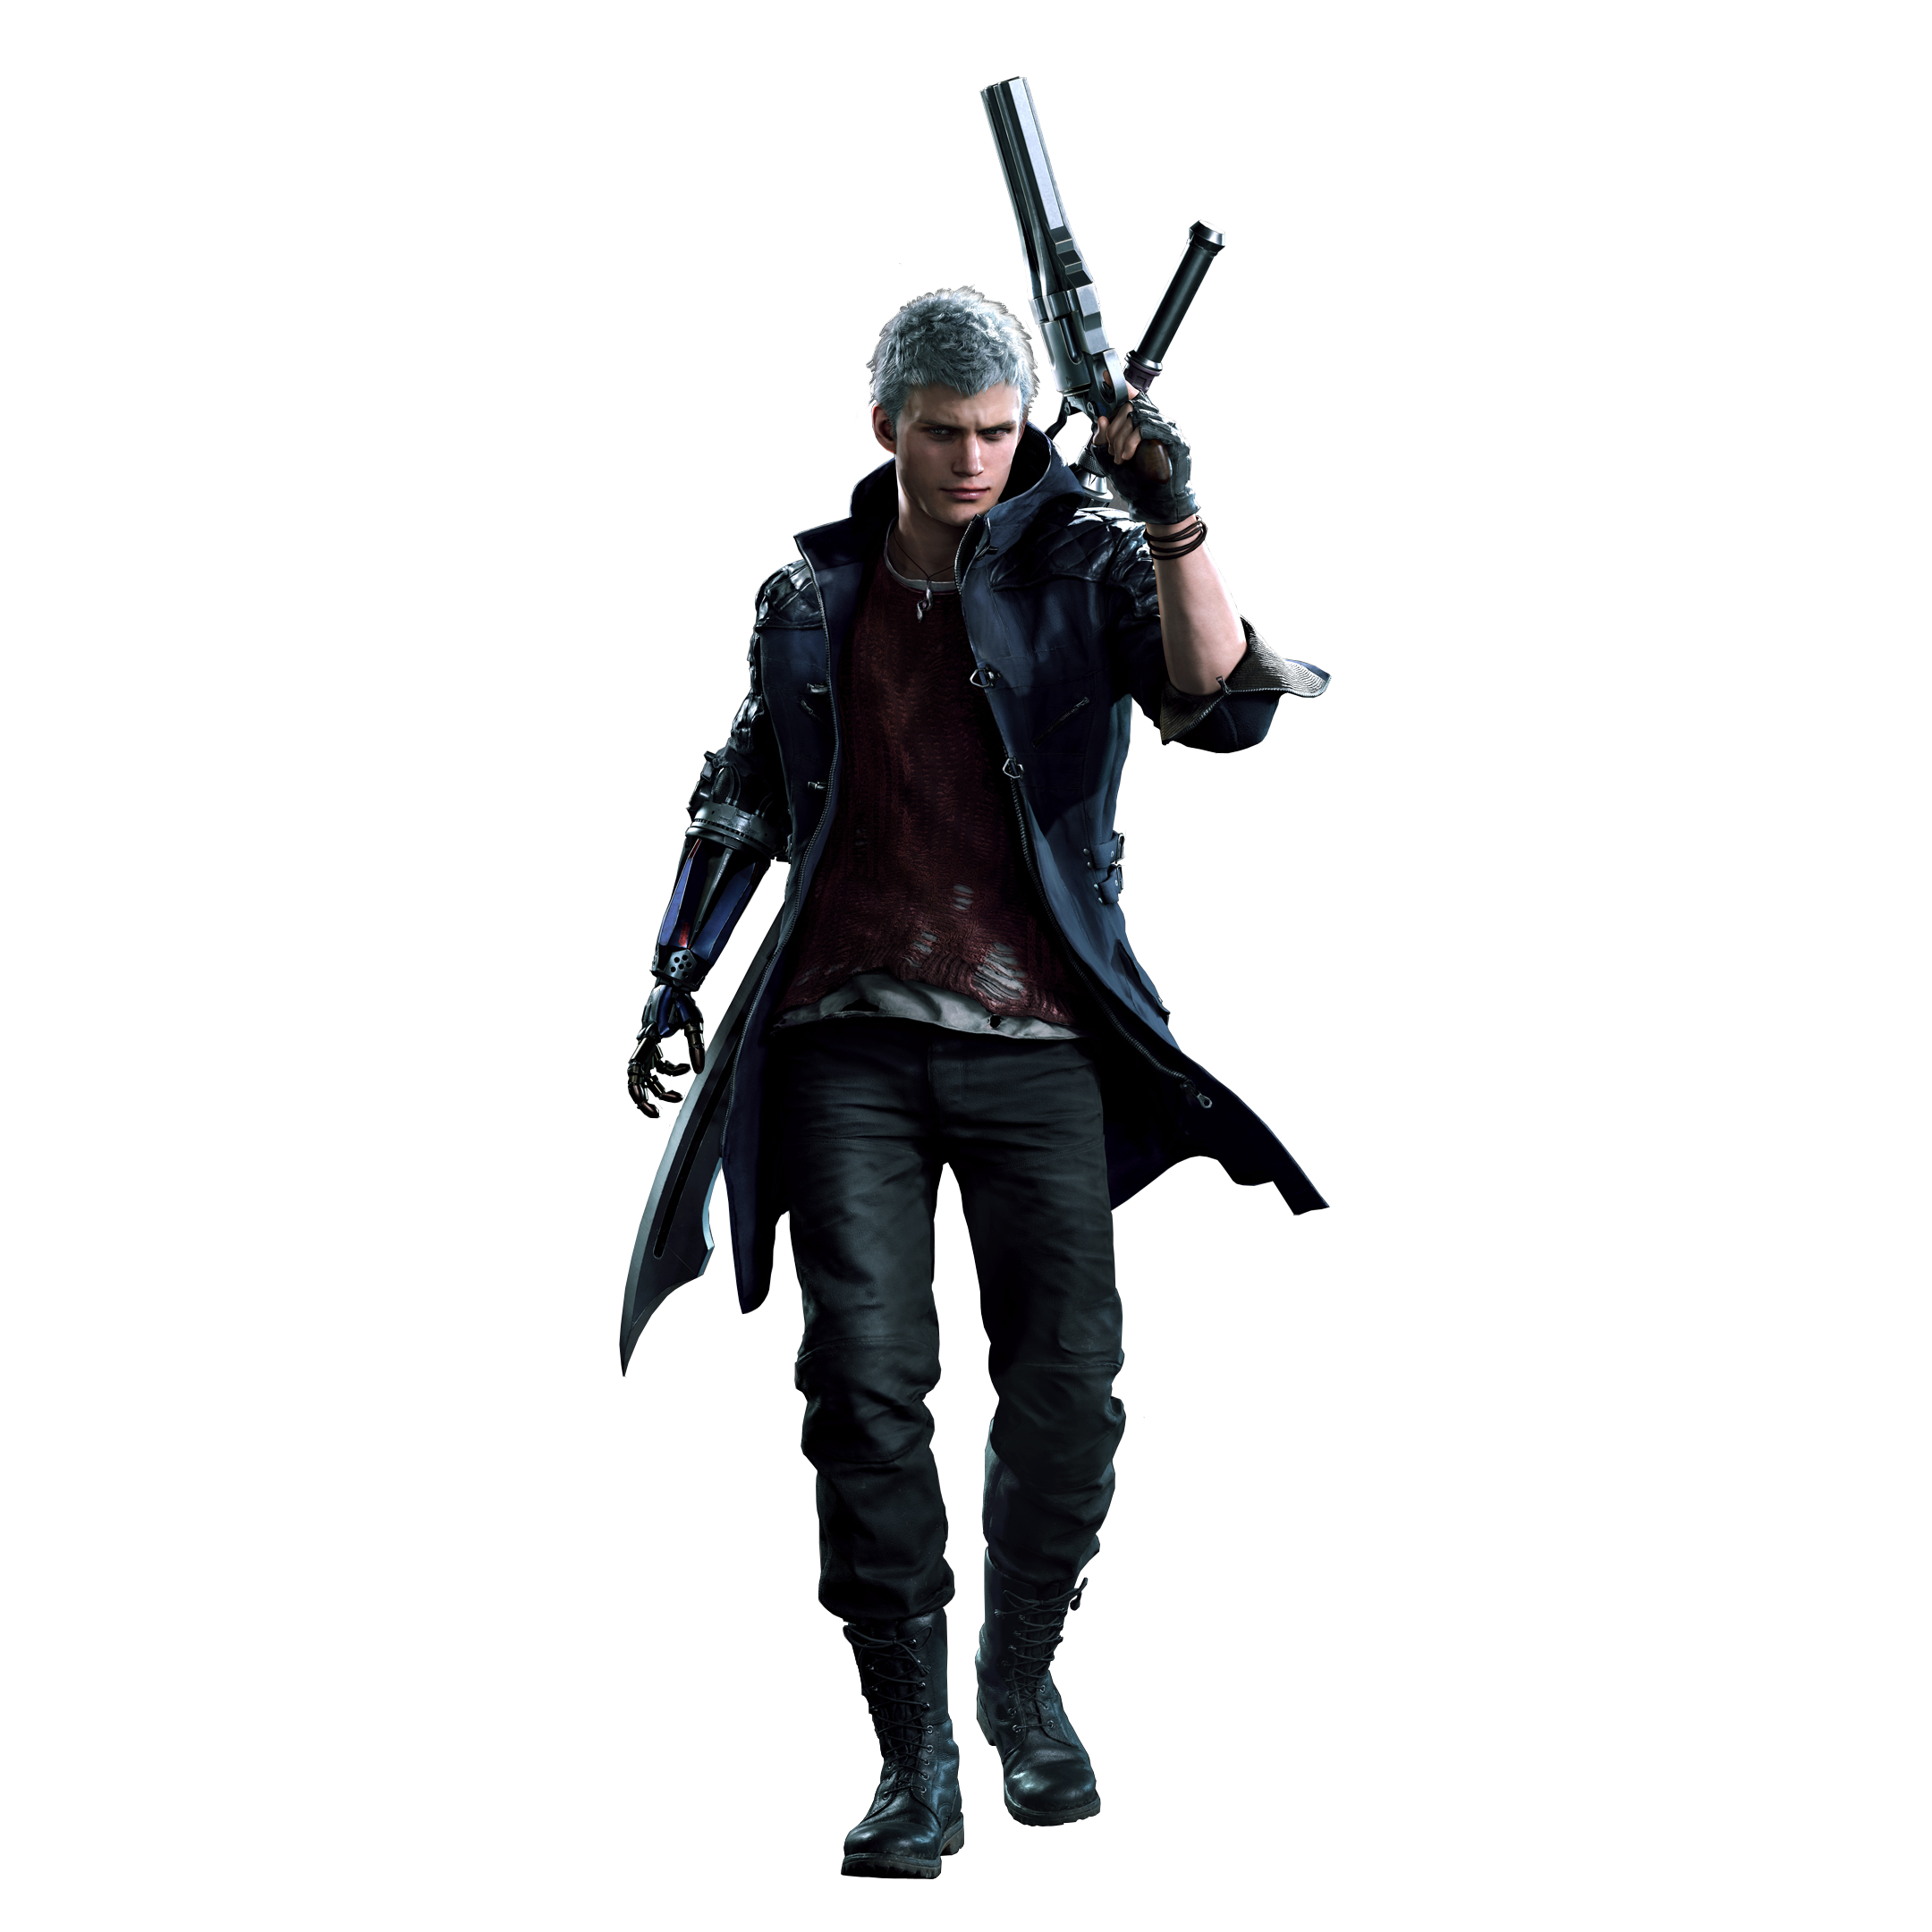 devil_may_cry_5_nero_render_png_by_gamingdeadtv-dce27xb.png